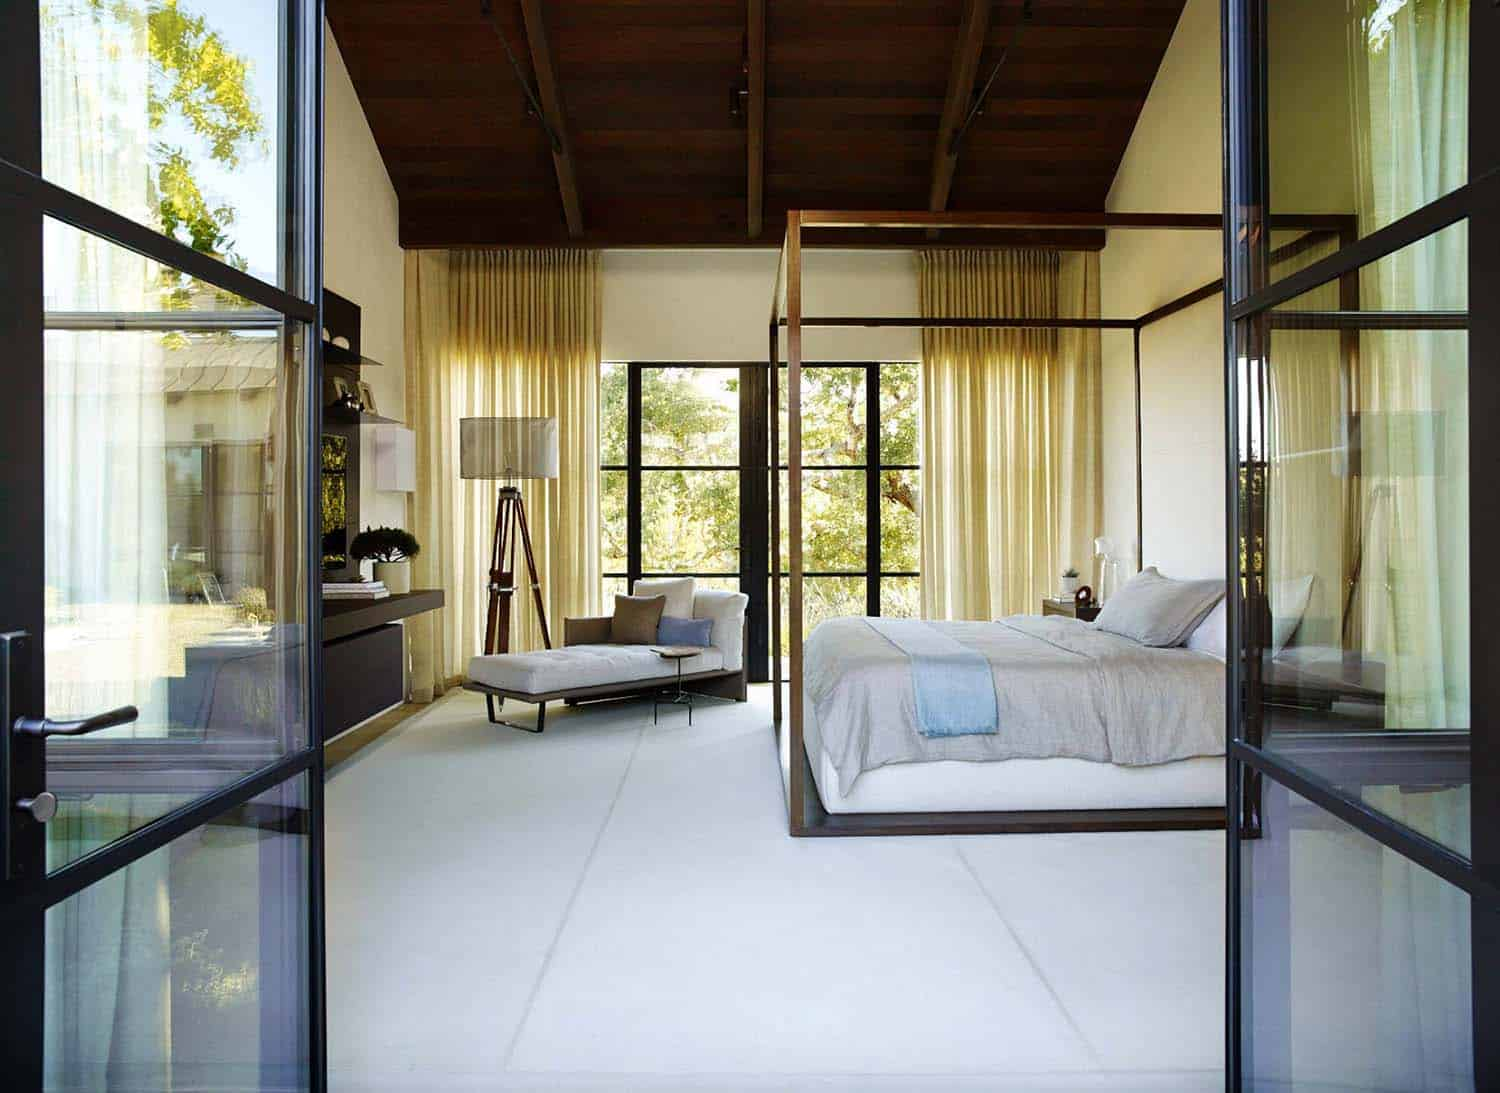 Contemporary Courtyard House-Butler Armsden Architects-10-1 Kindesign